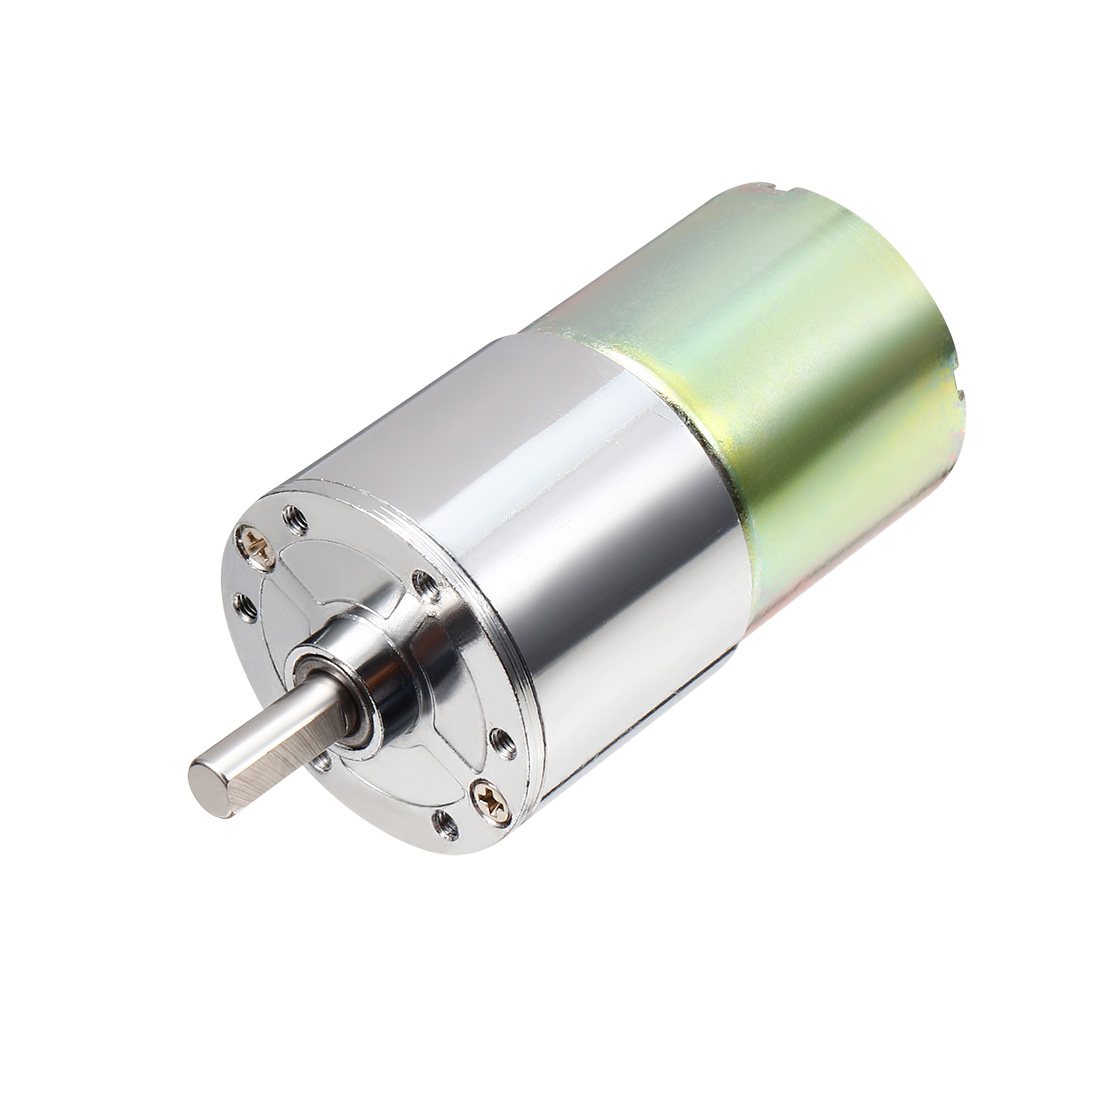 DC 24V 5000RPM Micro Gear Box Motor Speed Reduction Electric Gearbox Centric Output Shaft